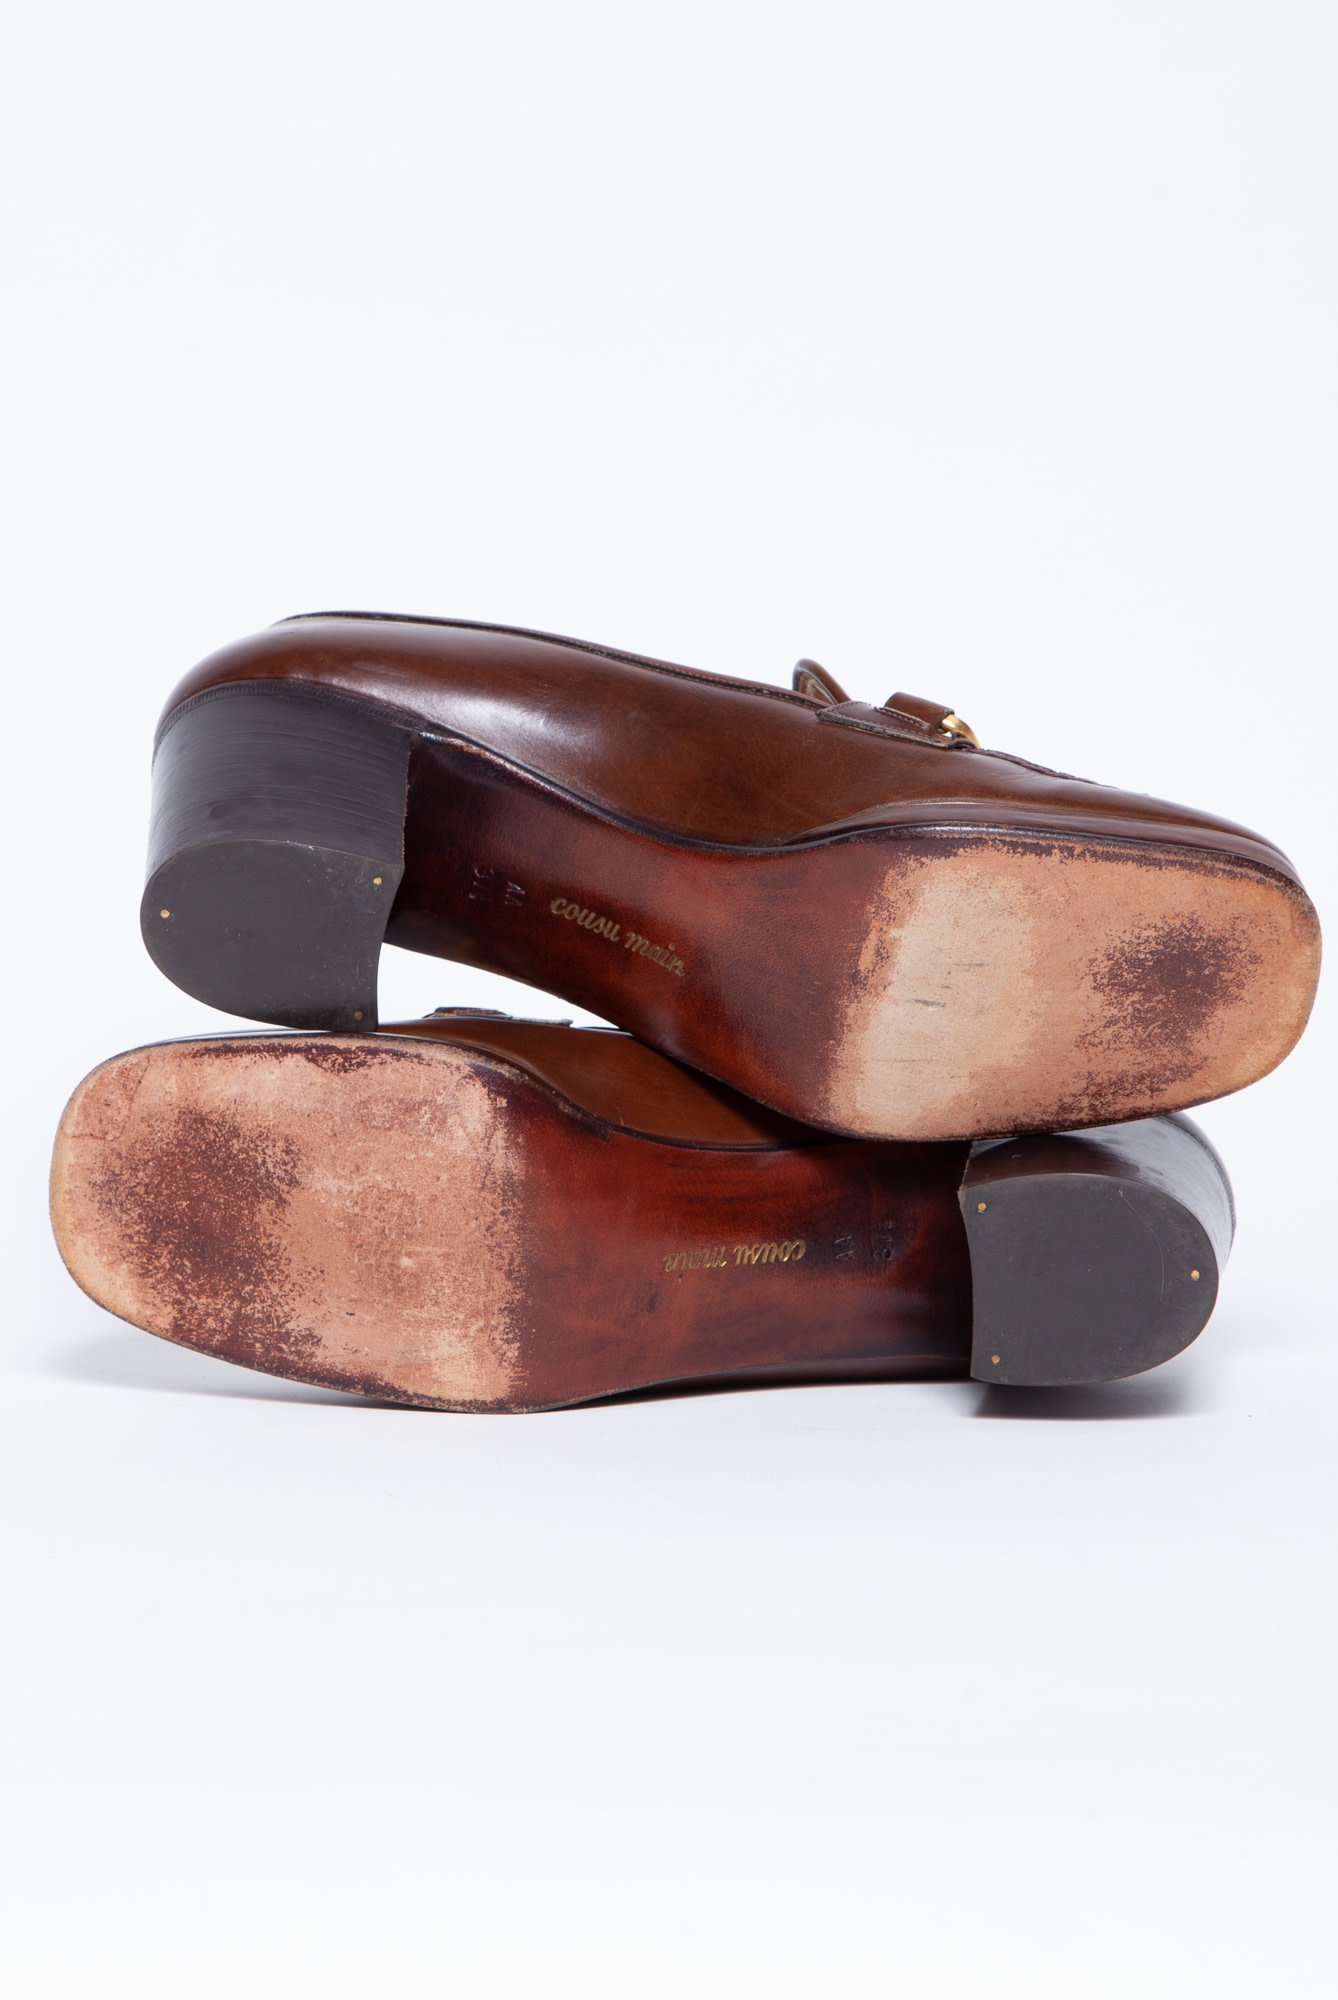 Céline NEW PRICE (WAS $220) - BROWN LEATHER SHOES WITH HORSEBILT